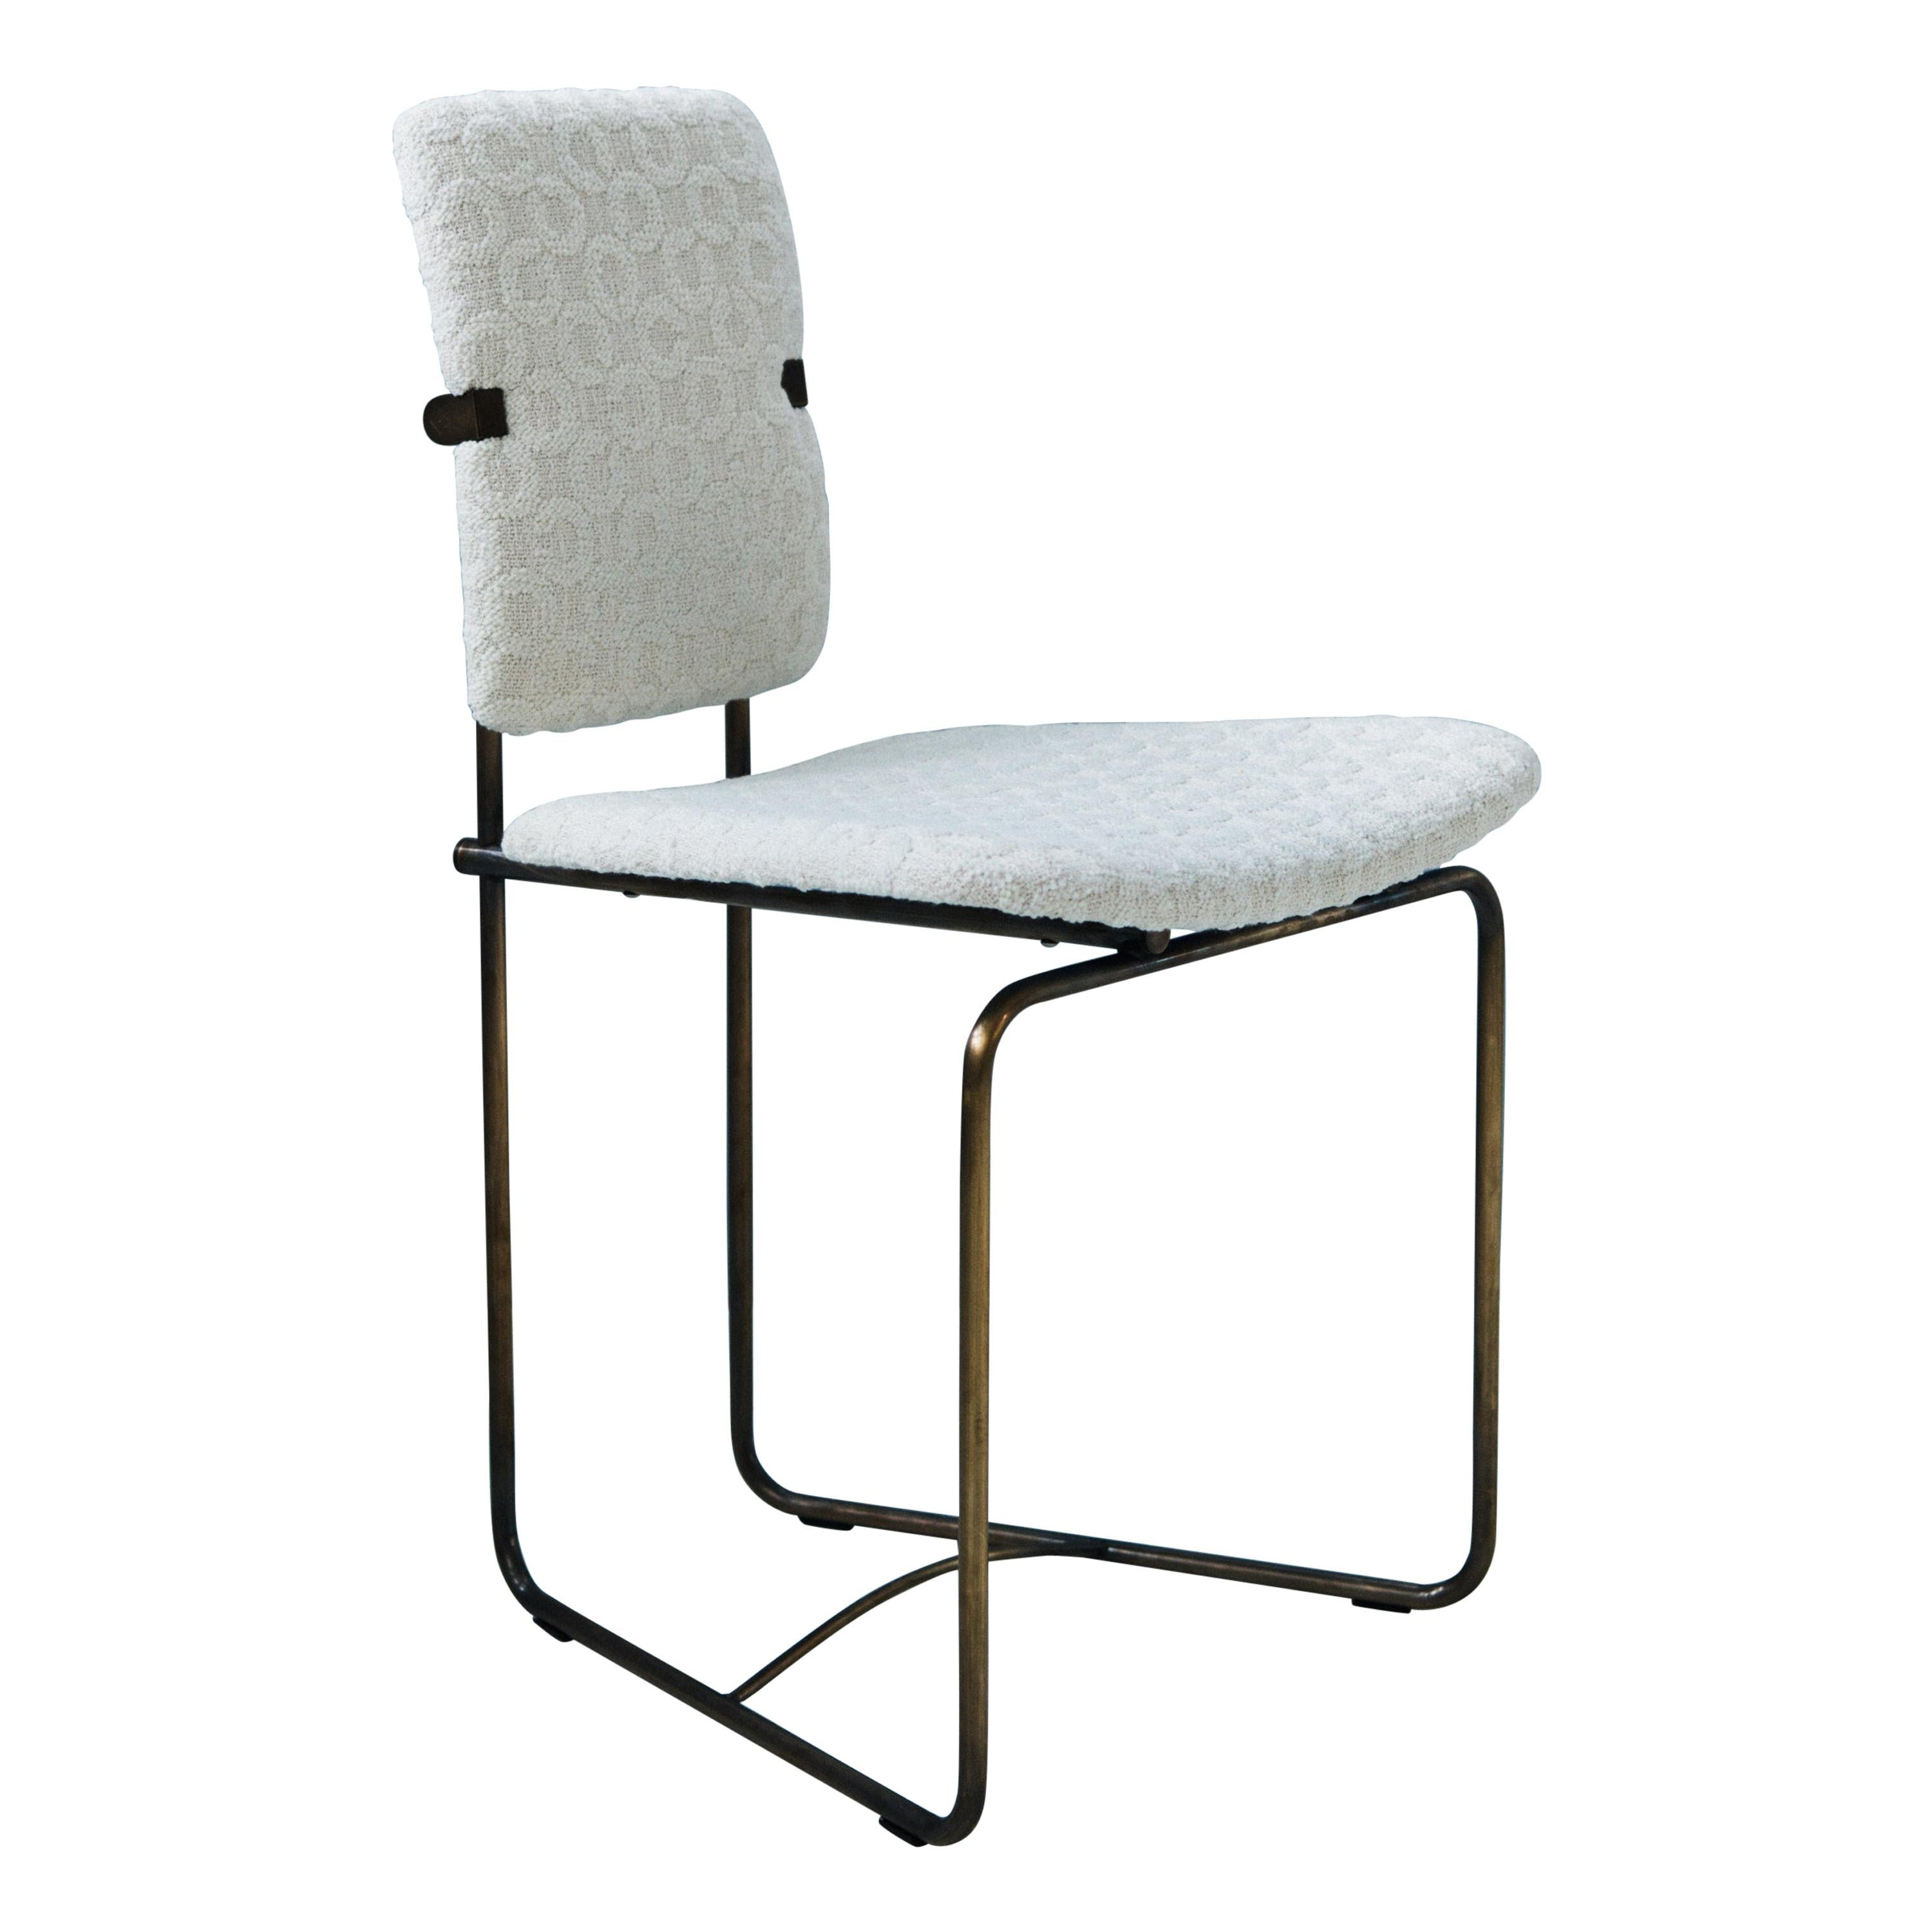 Bauhaus Style 'Jodie' S02 Chair in Aged Brass Framing by Peter Ghyczy